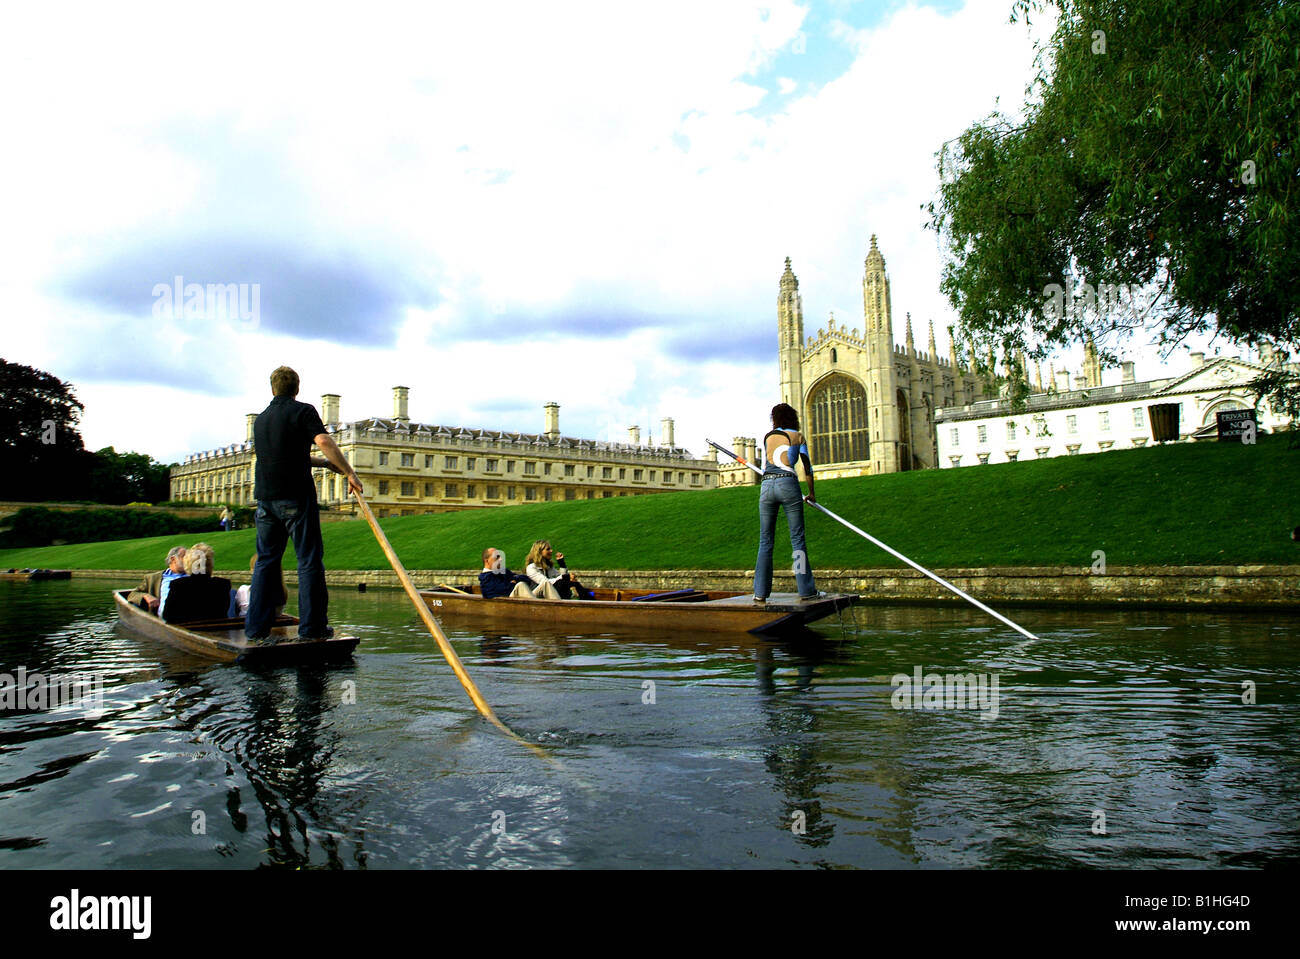 Kings College at Cambridge University with punts on the river Cam - Stock Image